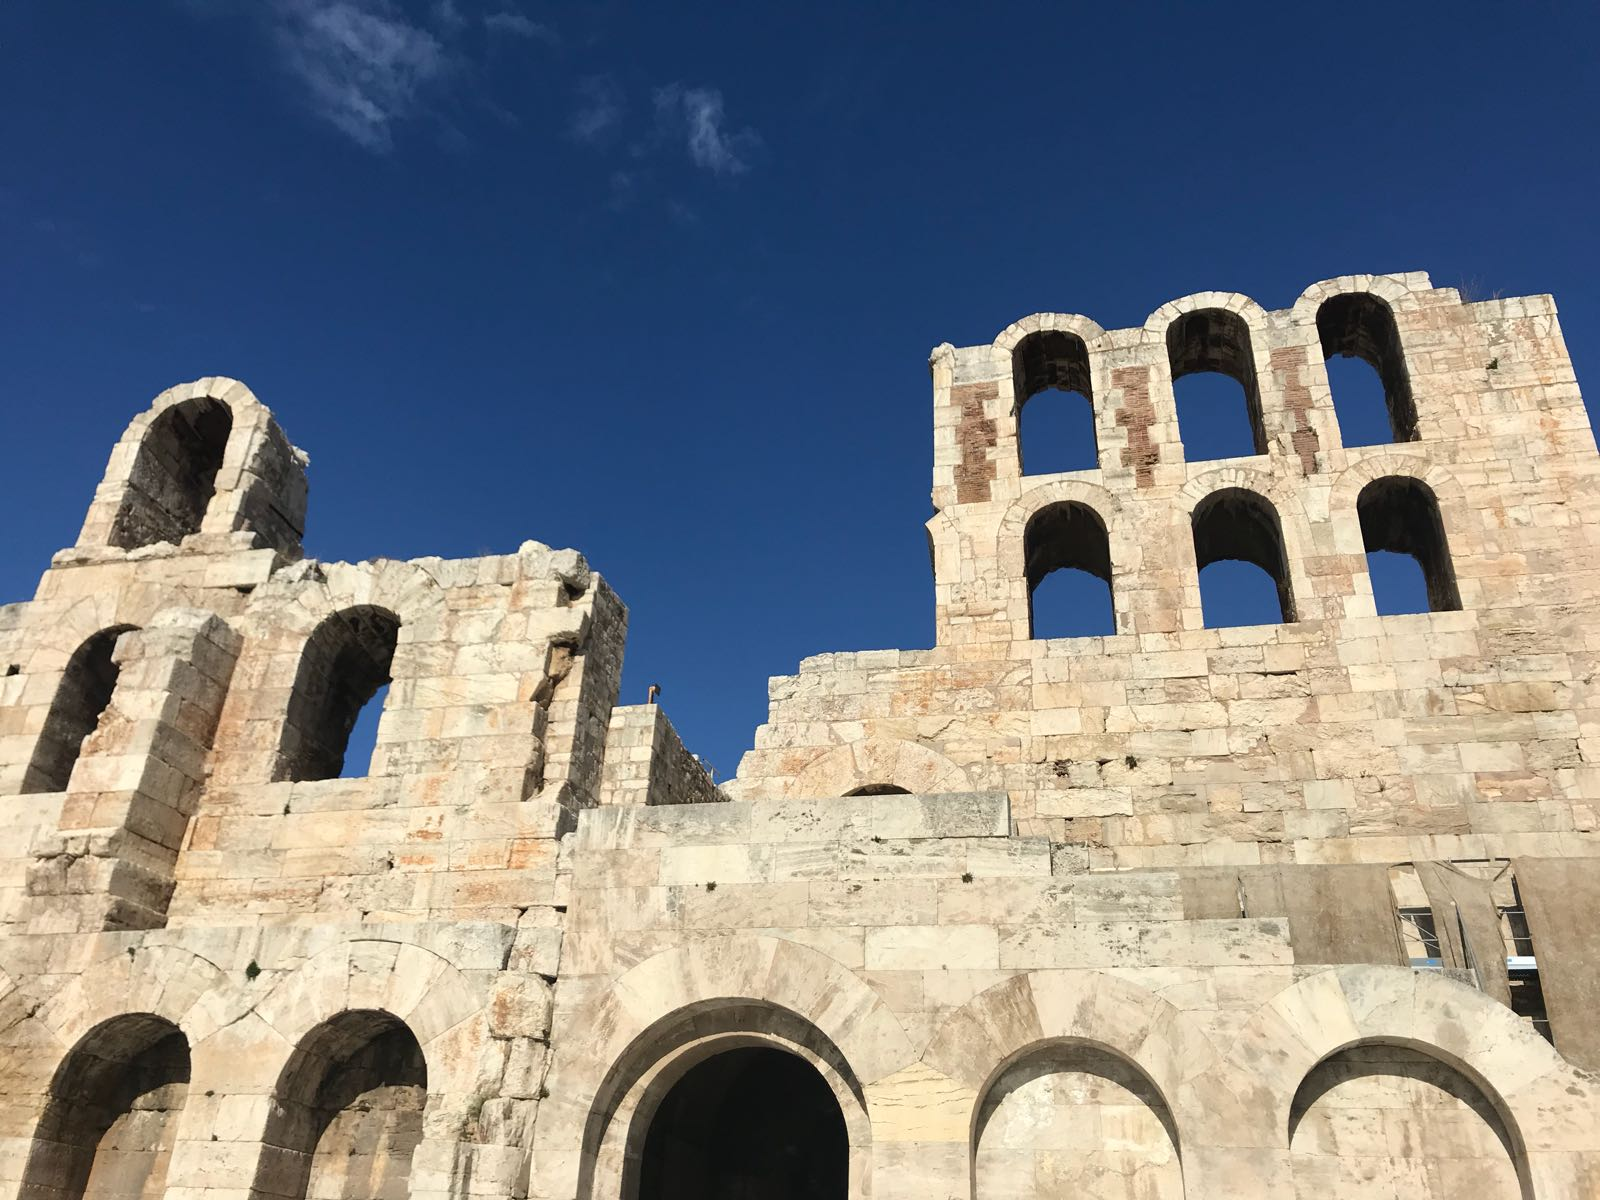 Entrance to the Odeon of Herodes Atticus theatre in the Acropolis